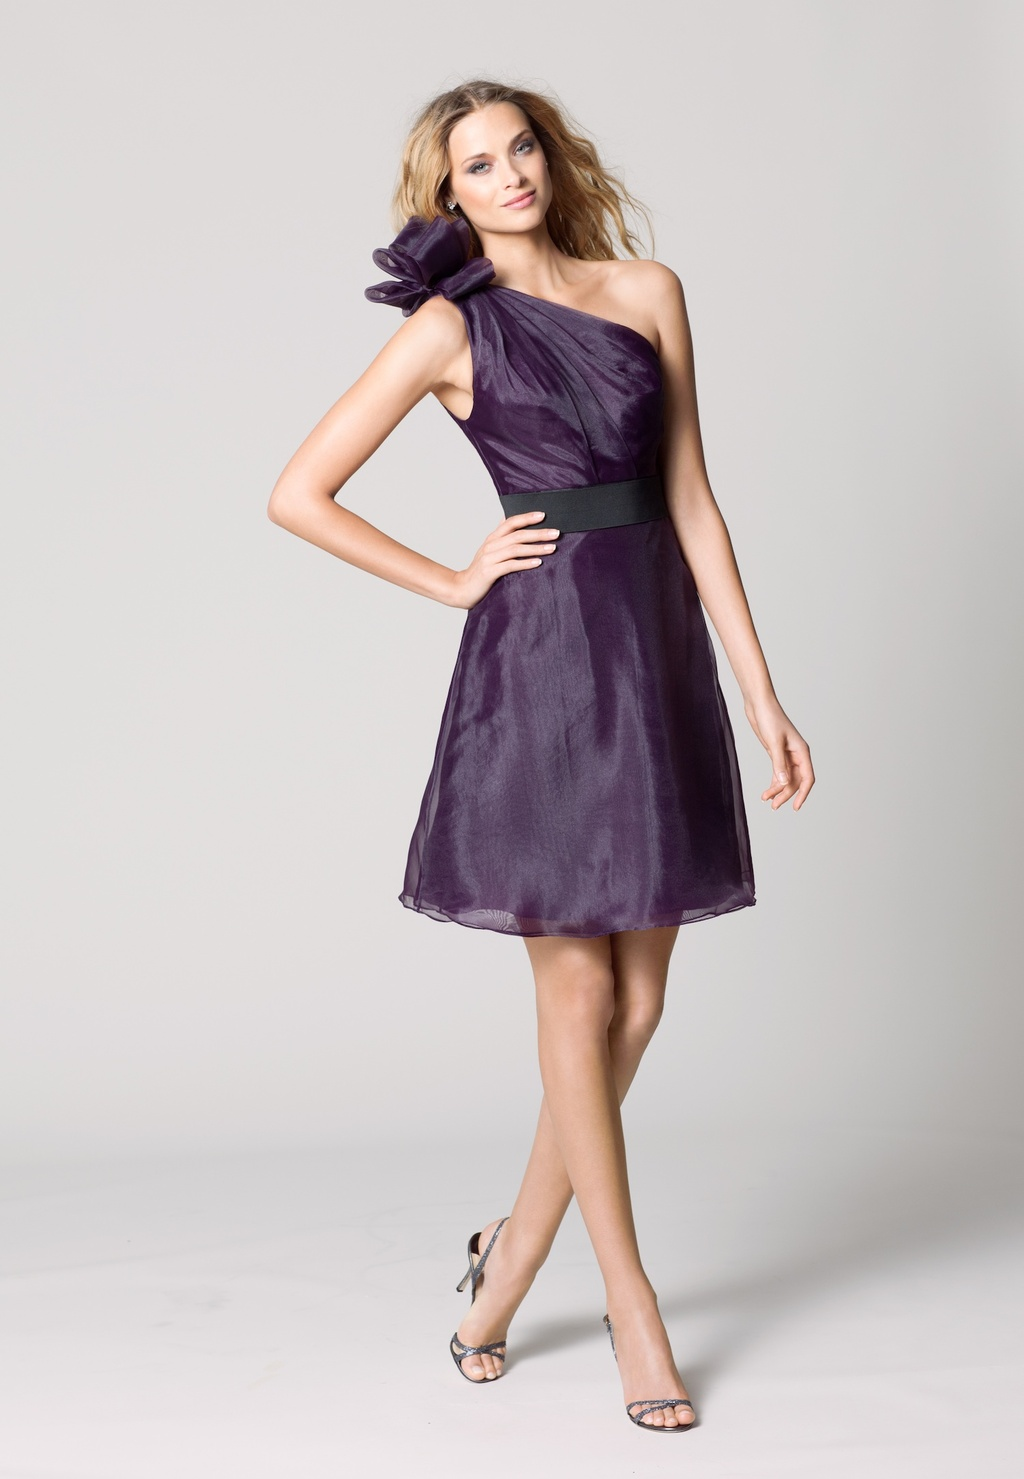 Affordable-bridesmaids-dresses-fall-2012-wtoo-by-watters-bridal-party-eggplant-purple-one-shoulder.full